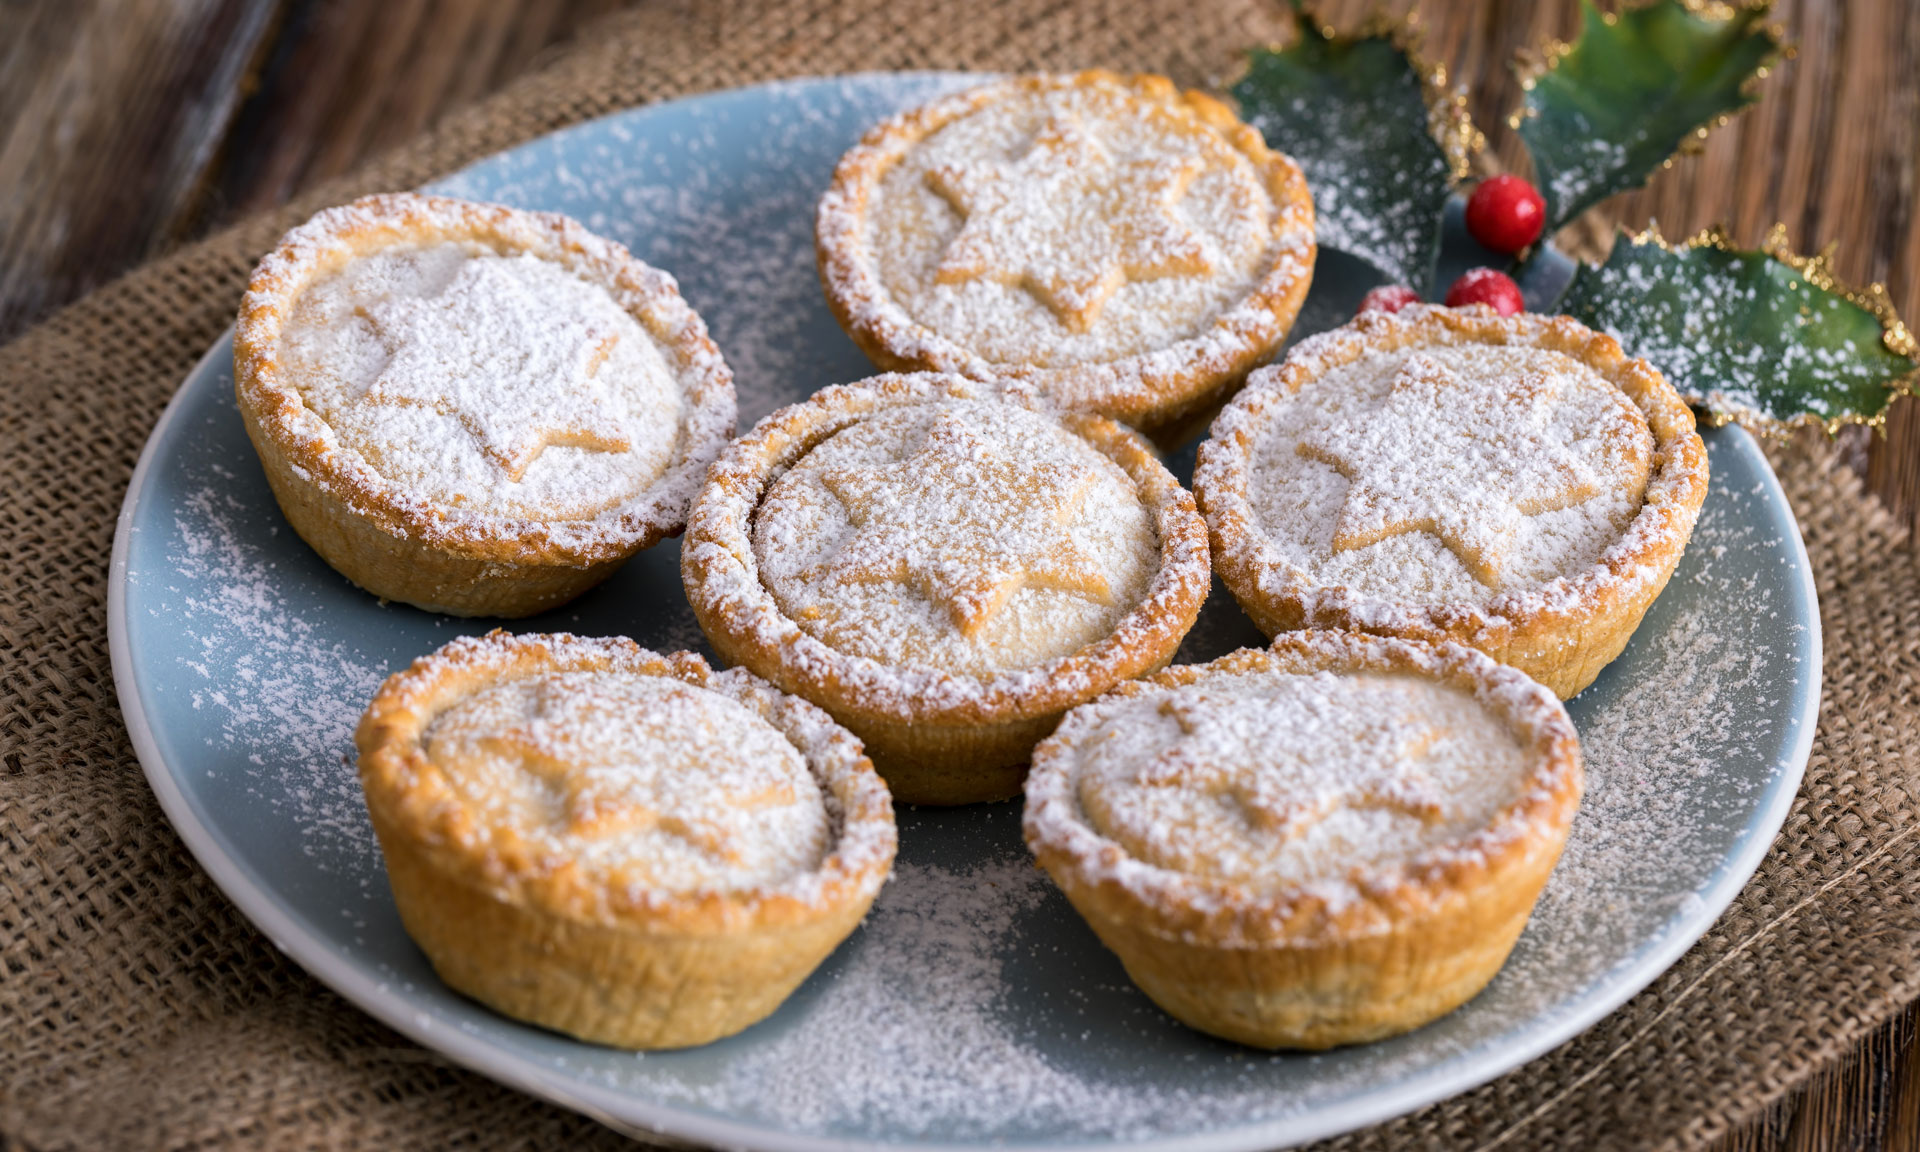 53ff3a93030 Asda premium mince pies voted best from supermarkets for Christmas 2018